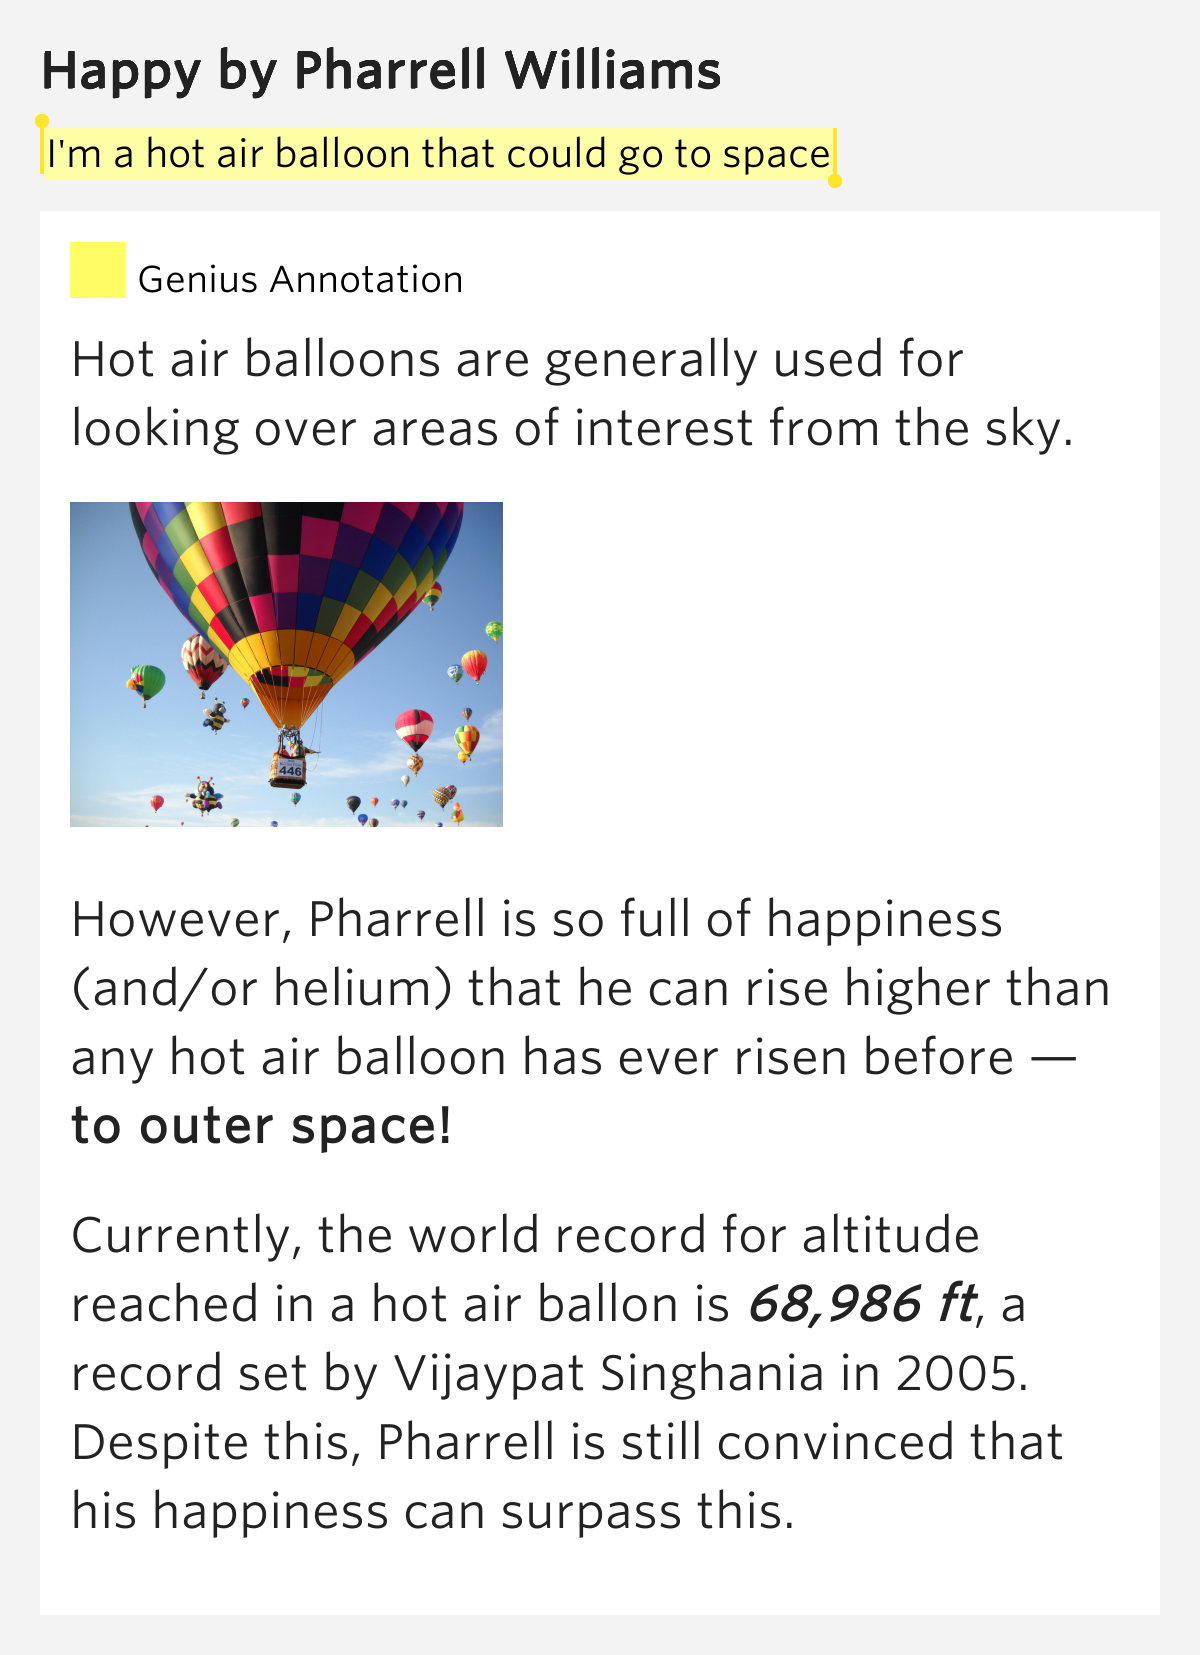 I'm a hot air balloon that could go to space – Happy